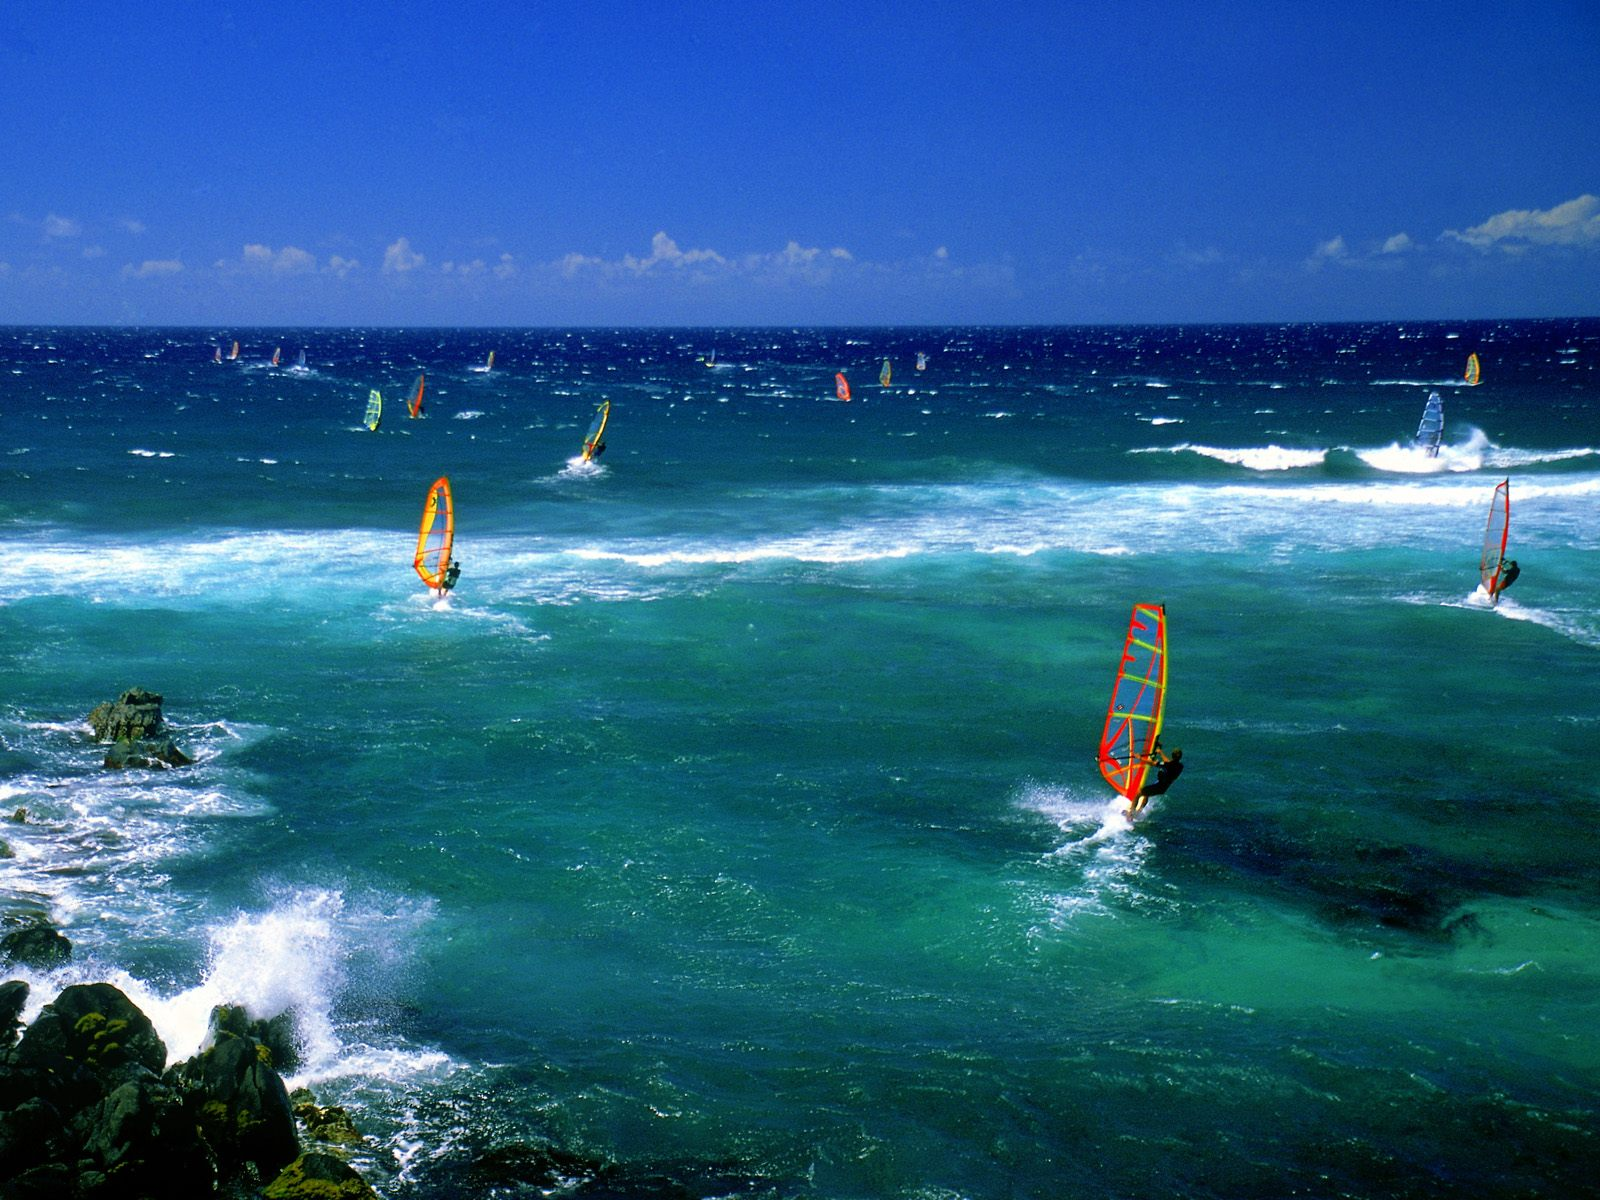 surfing images windsurfers maui hd wallpaper and